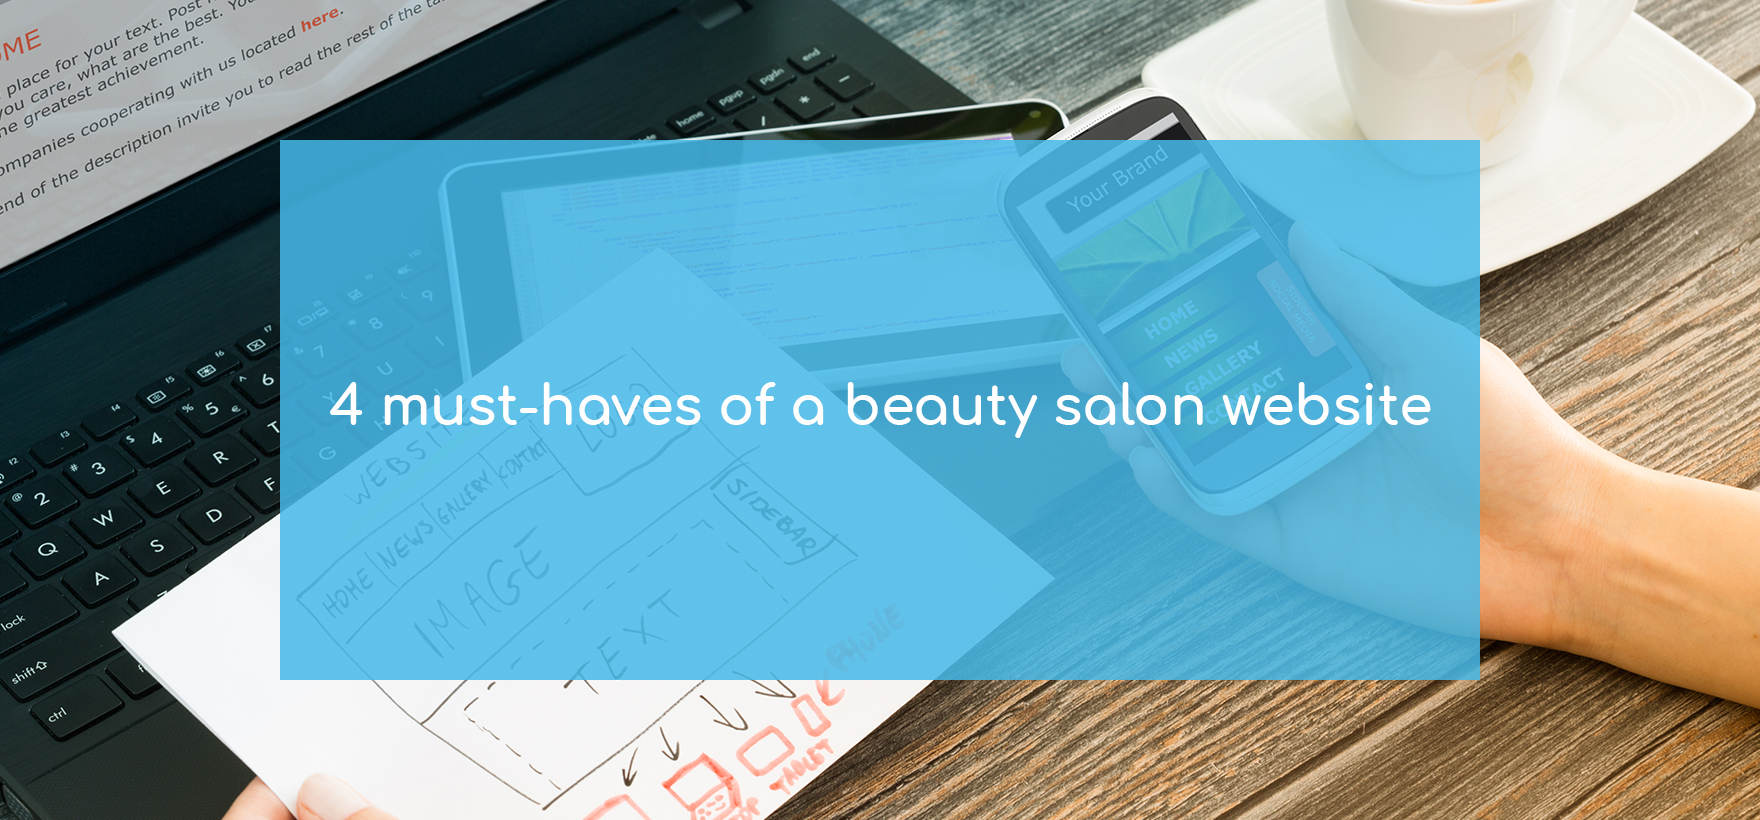 Salon websites ideas. 4 must haves of a beauty salon website